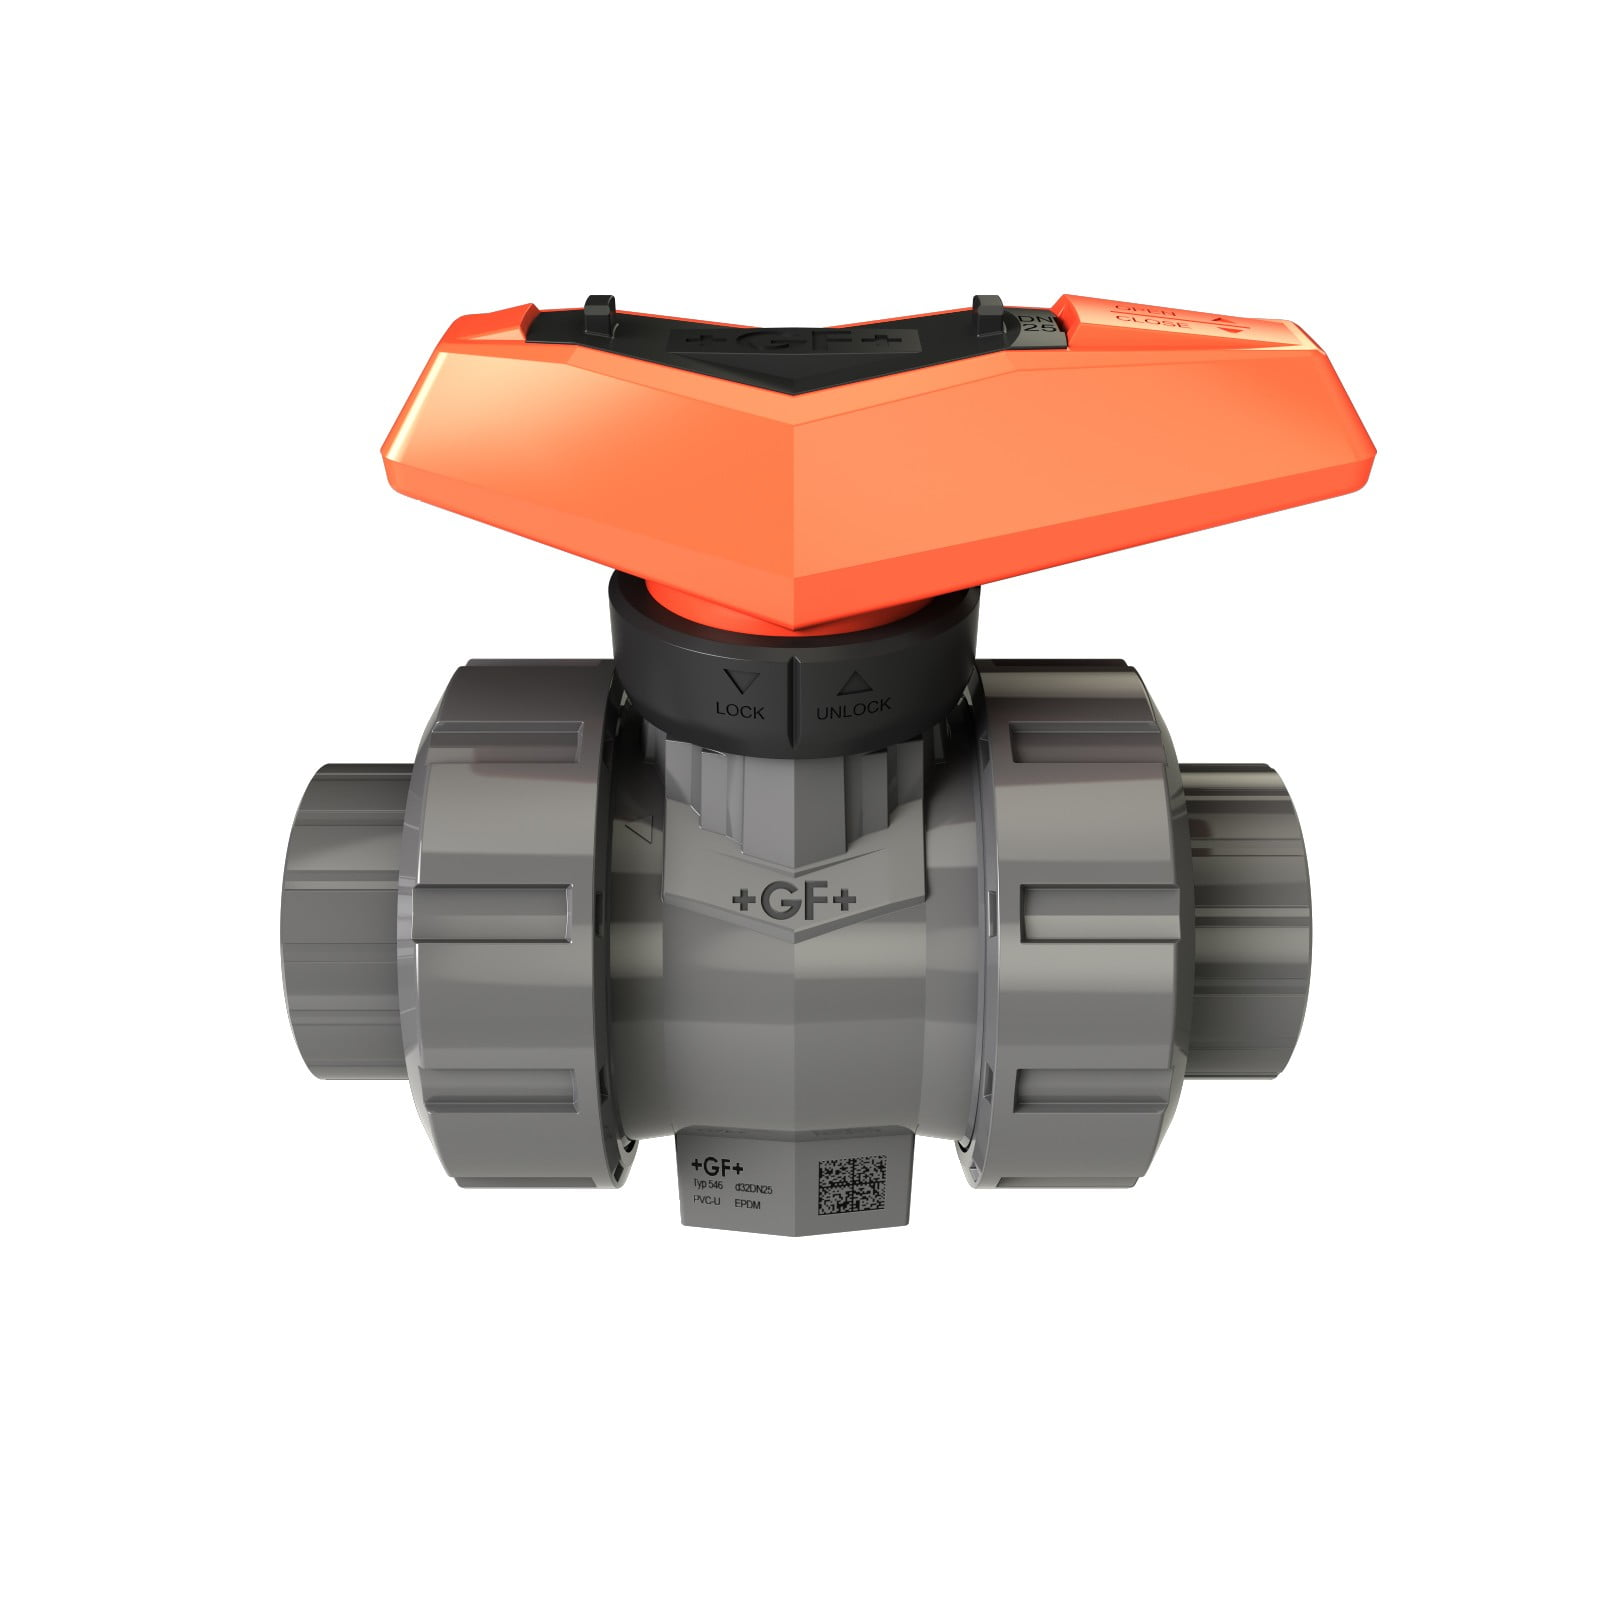 PVC ball valve type 546 PRO by GF Piping Systems